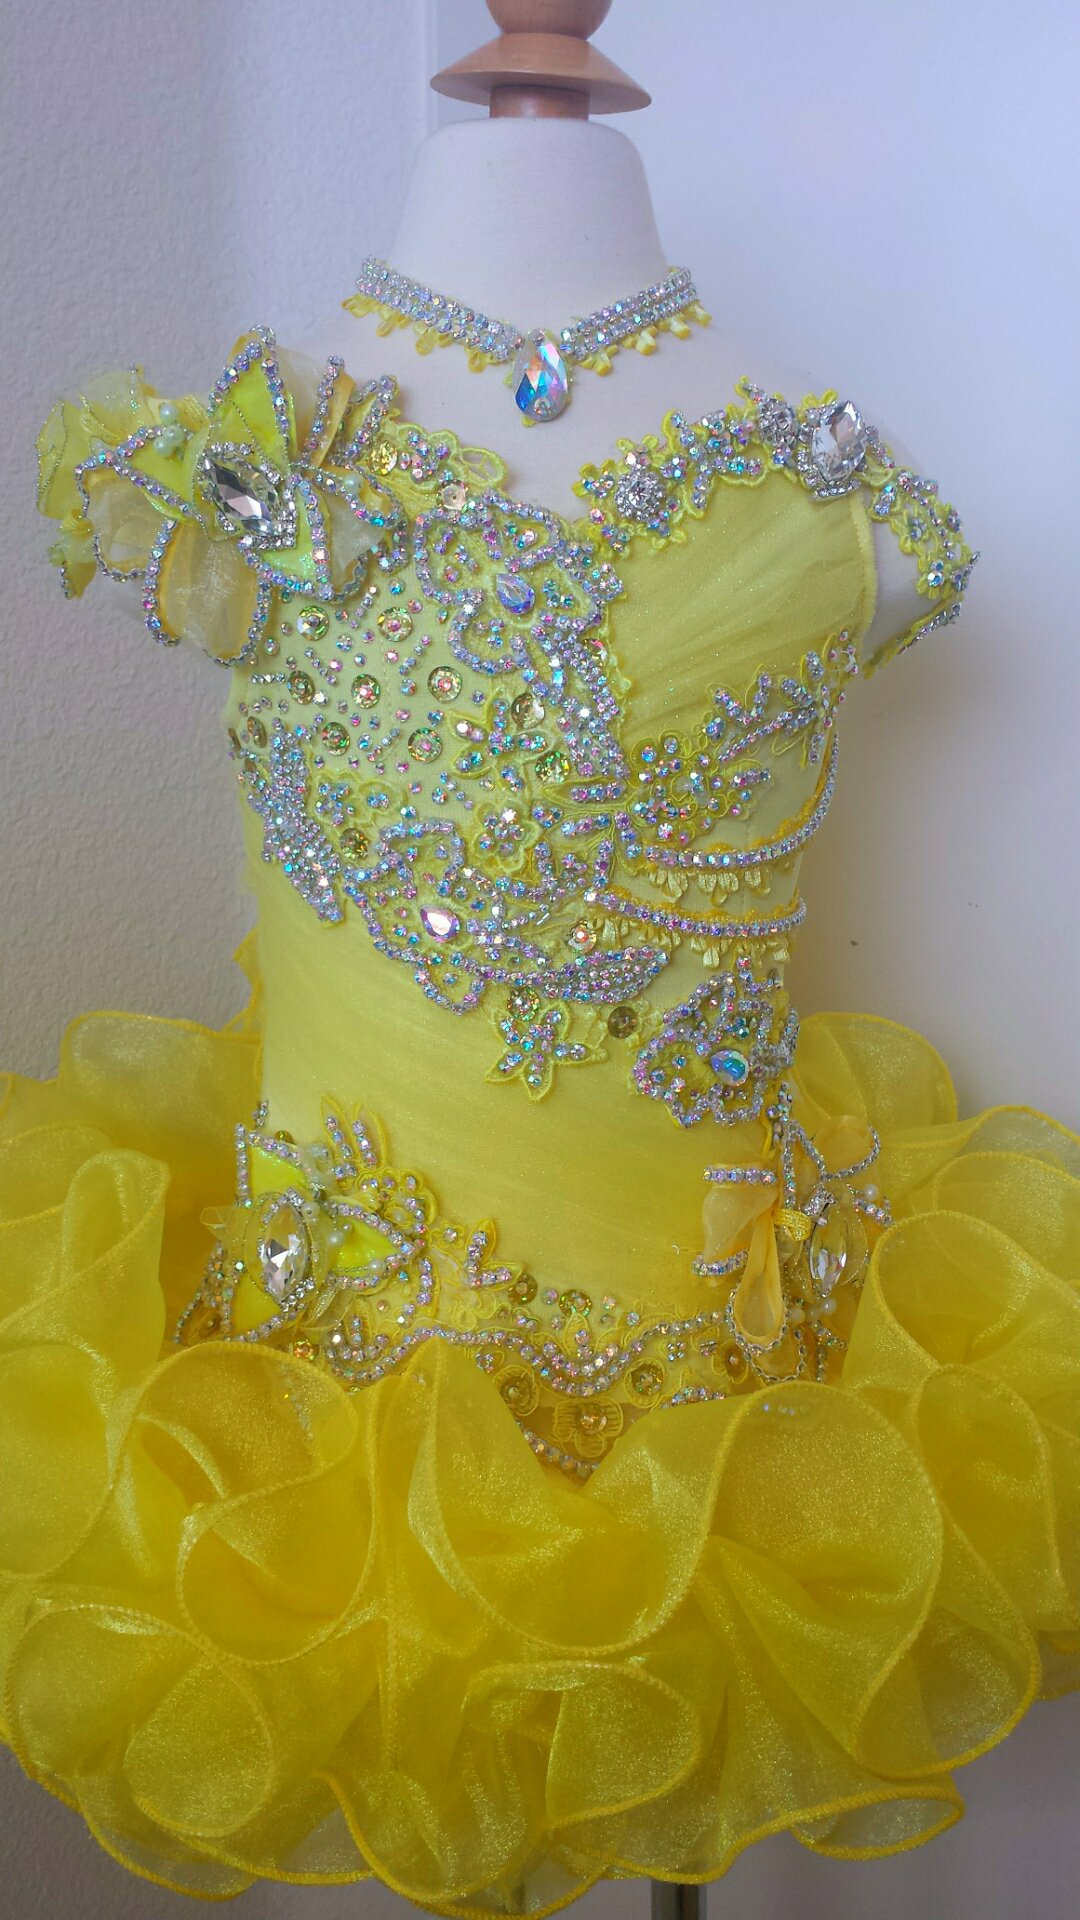 Glitz pageant dresses for rent - Received_m_mid_1406823922234_eb7e1c76ad53527d35_0 Jpeg